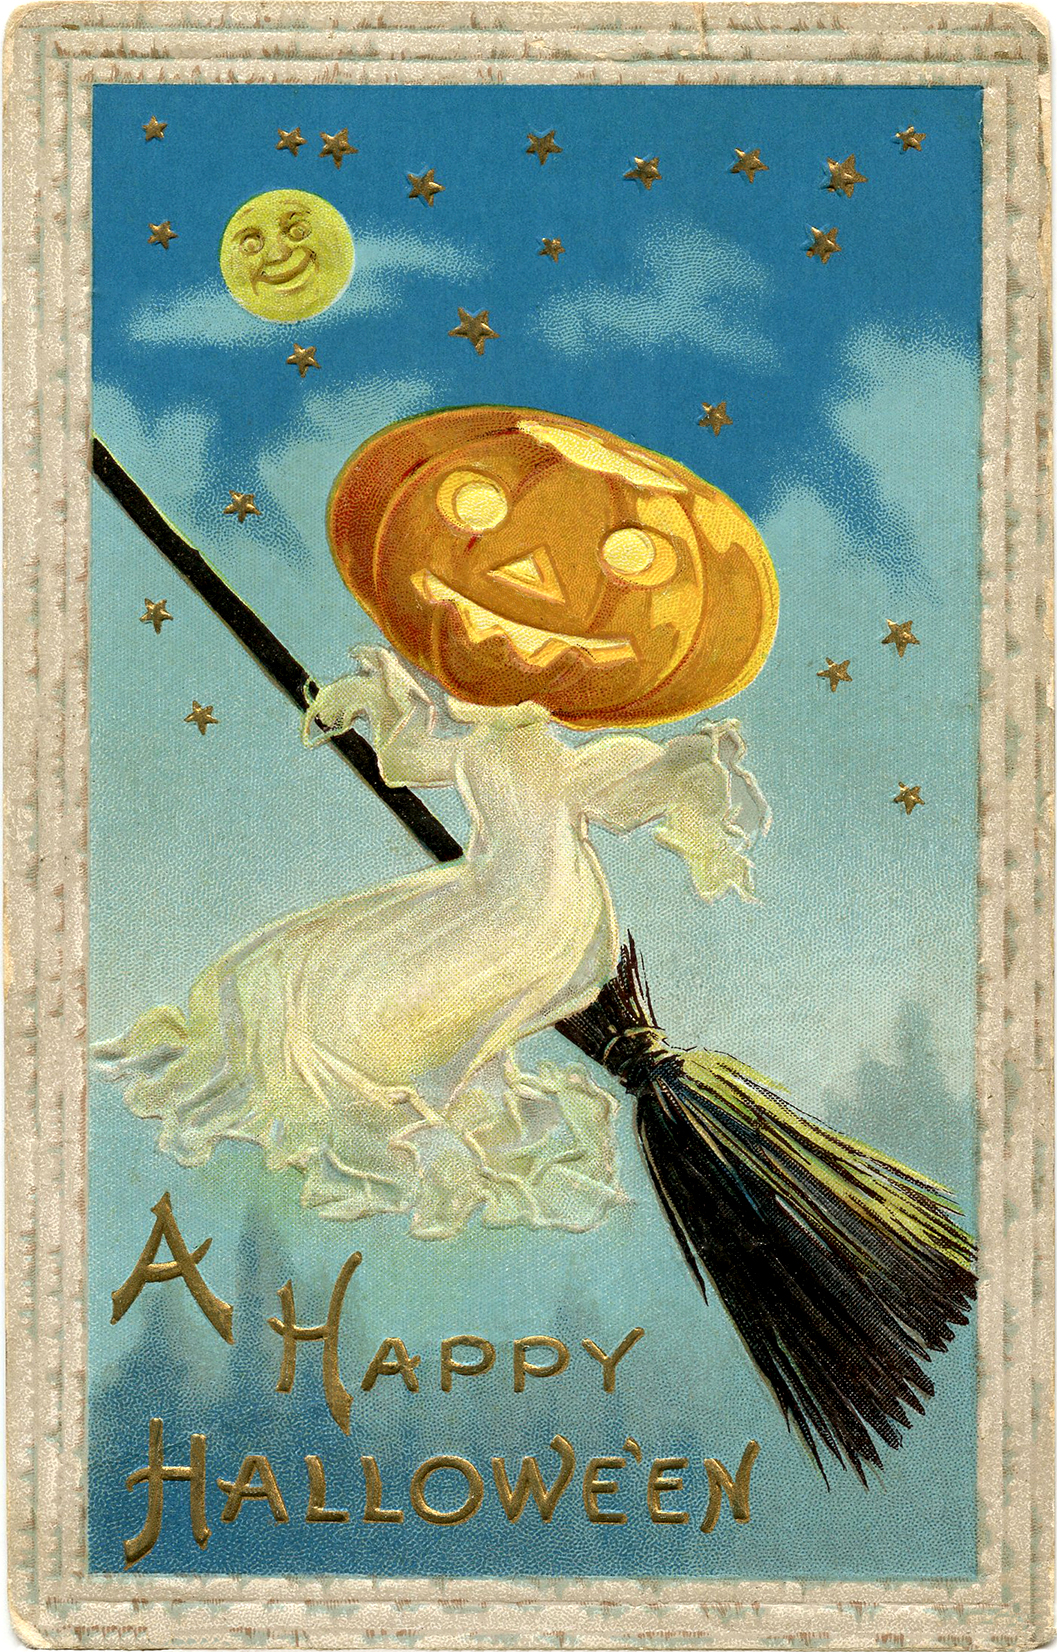 Vintage Halloween Image Free  Ghost  The Graphics Fairy - Vintage Halloween